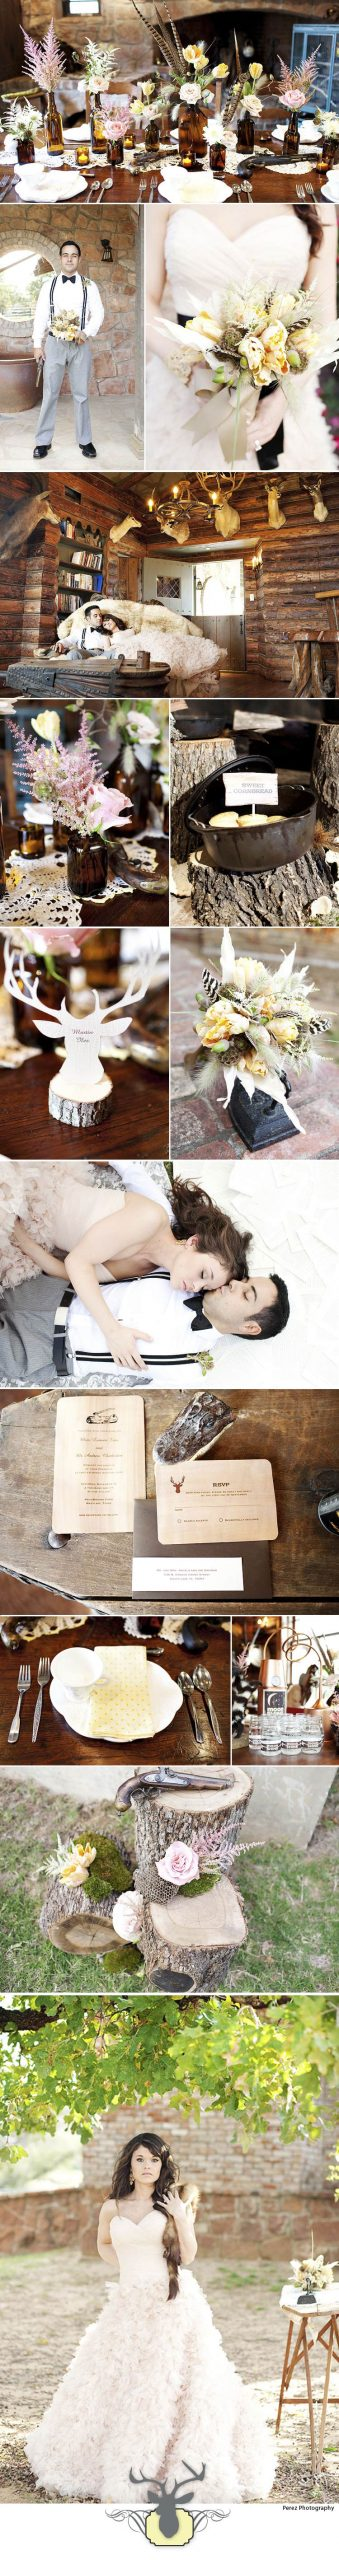 Rustic Preppy Chic Wedding Design shot by Perez Photography